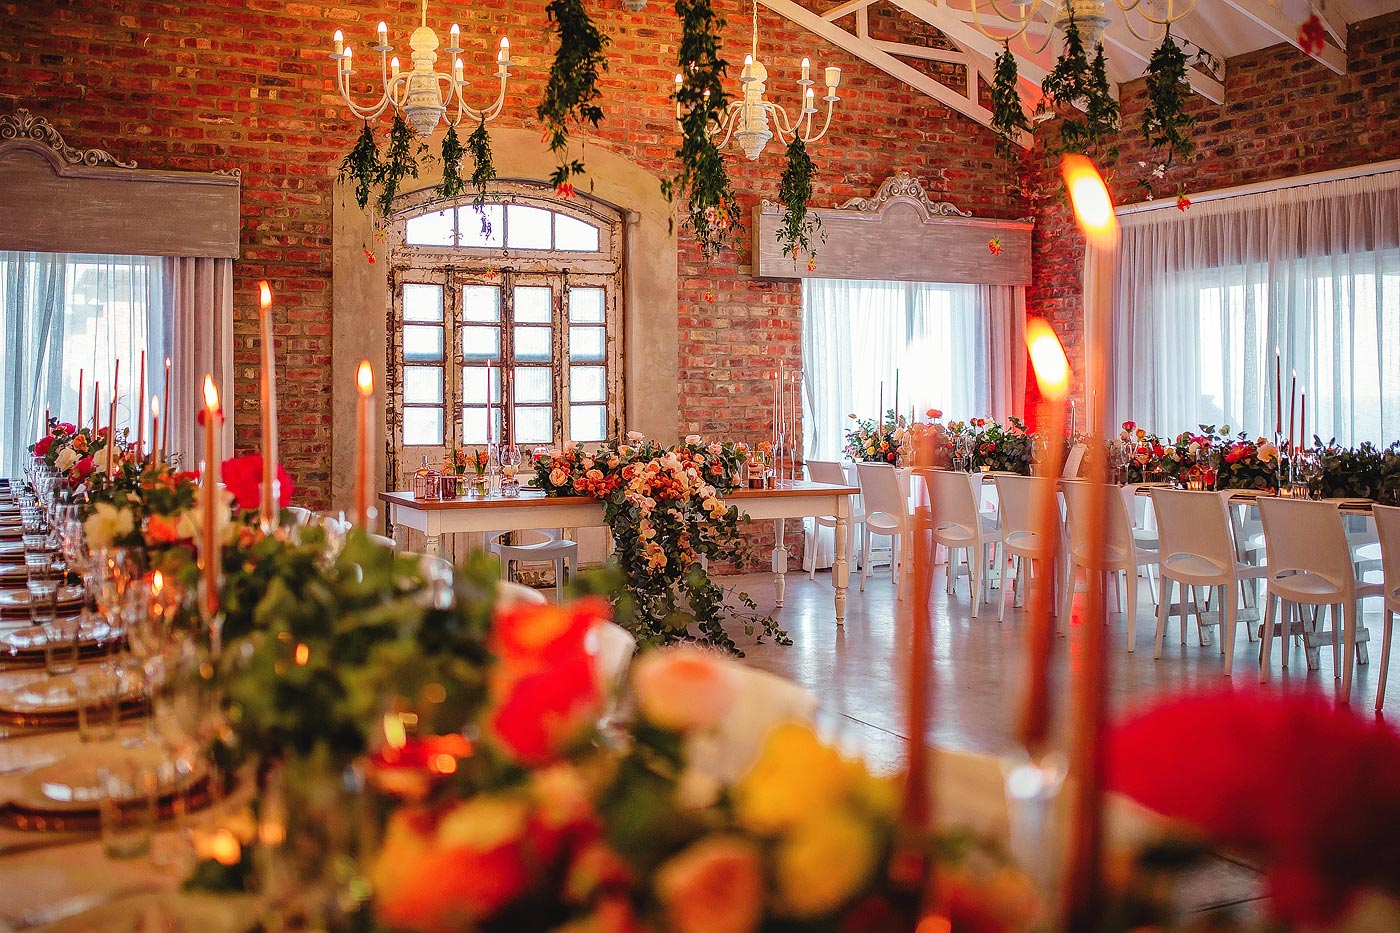 Warm inviting colour palette with extravagant wedding decor flowers.